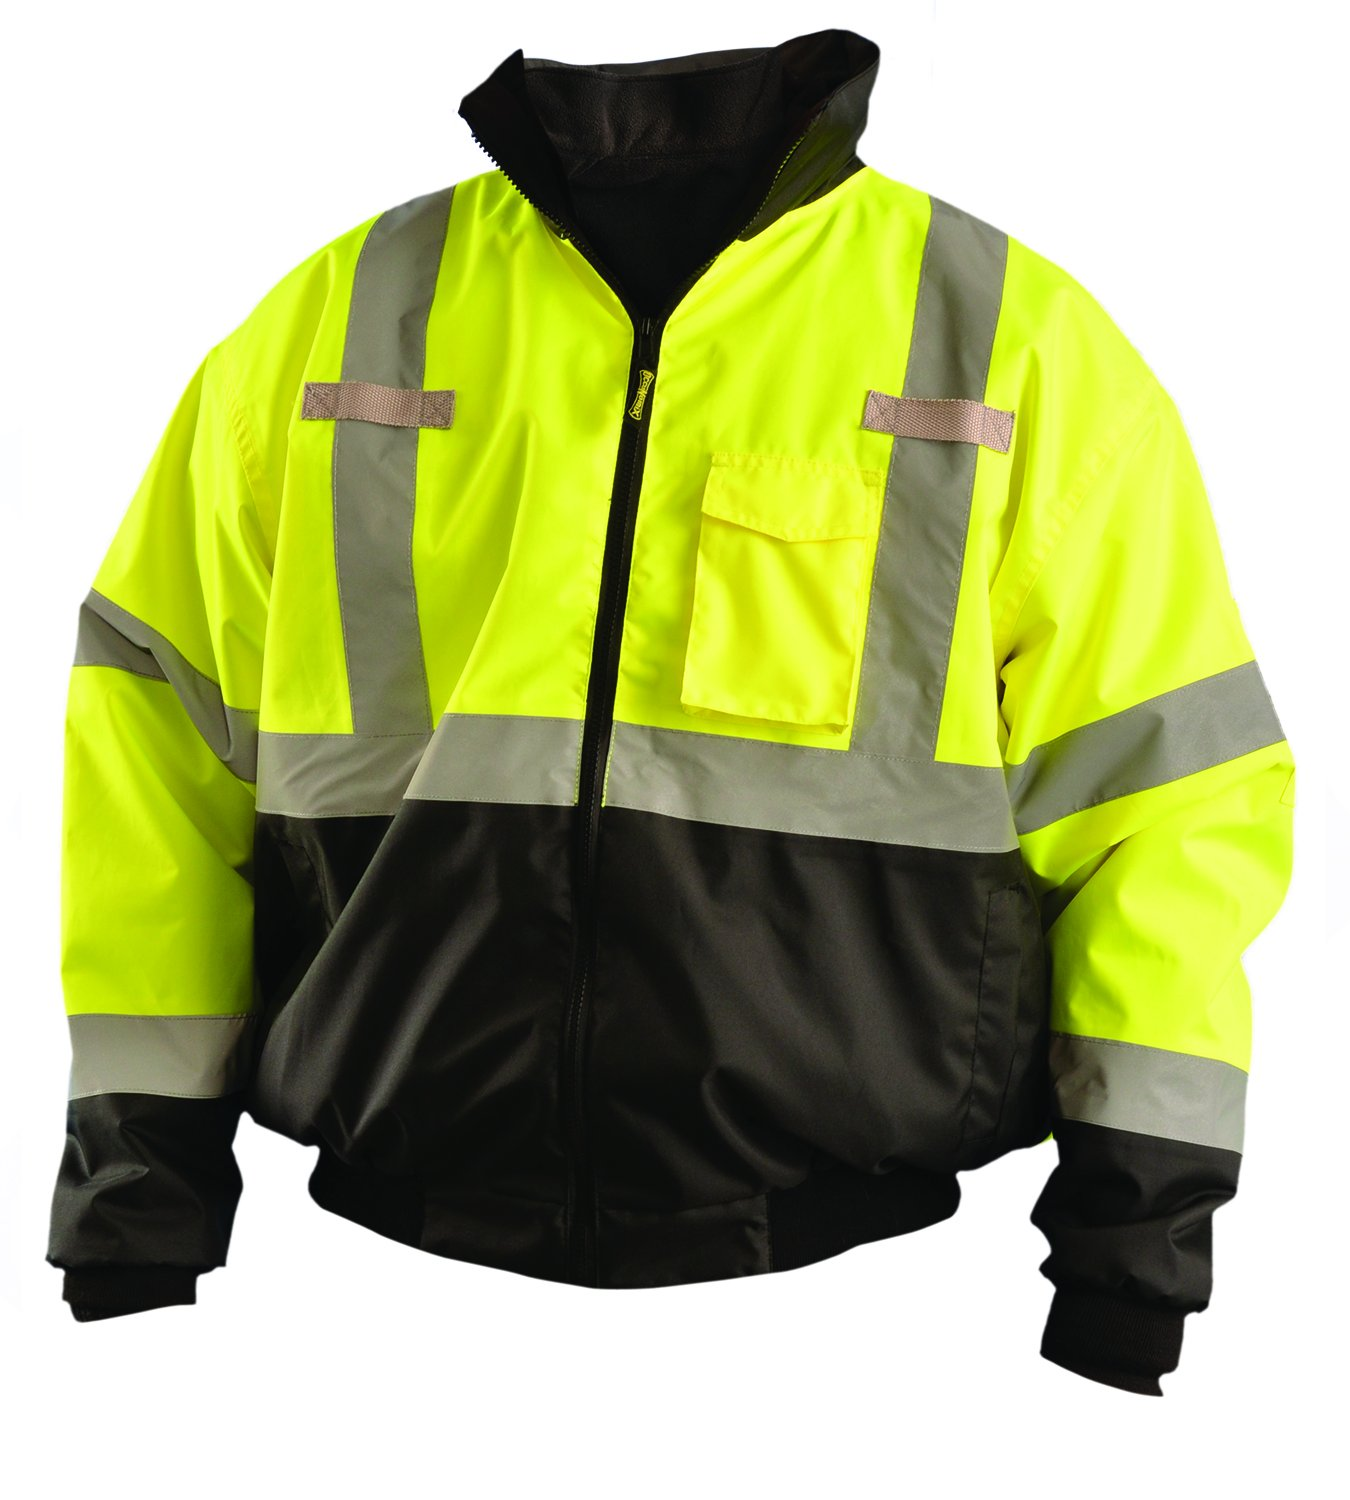 OccuNomix LUX-ETJBJR-BYXL High Visibility 3-in-1 Fleece Lined Black Bottom Bomber Jacket with Roll-Away Hood, Removable Lining and 6 Pockets, Class 3, 100% ANSI Polyester, X-Large, Yellow by OccuNomix